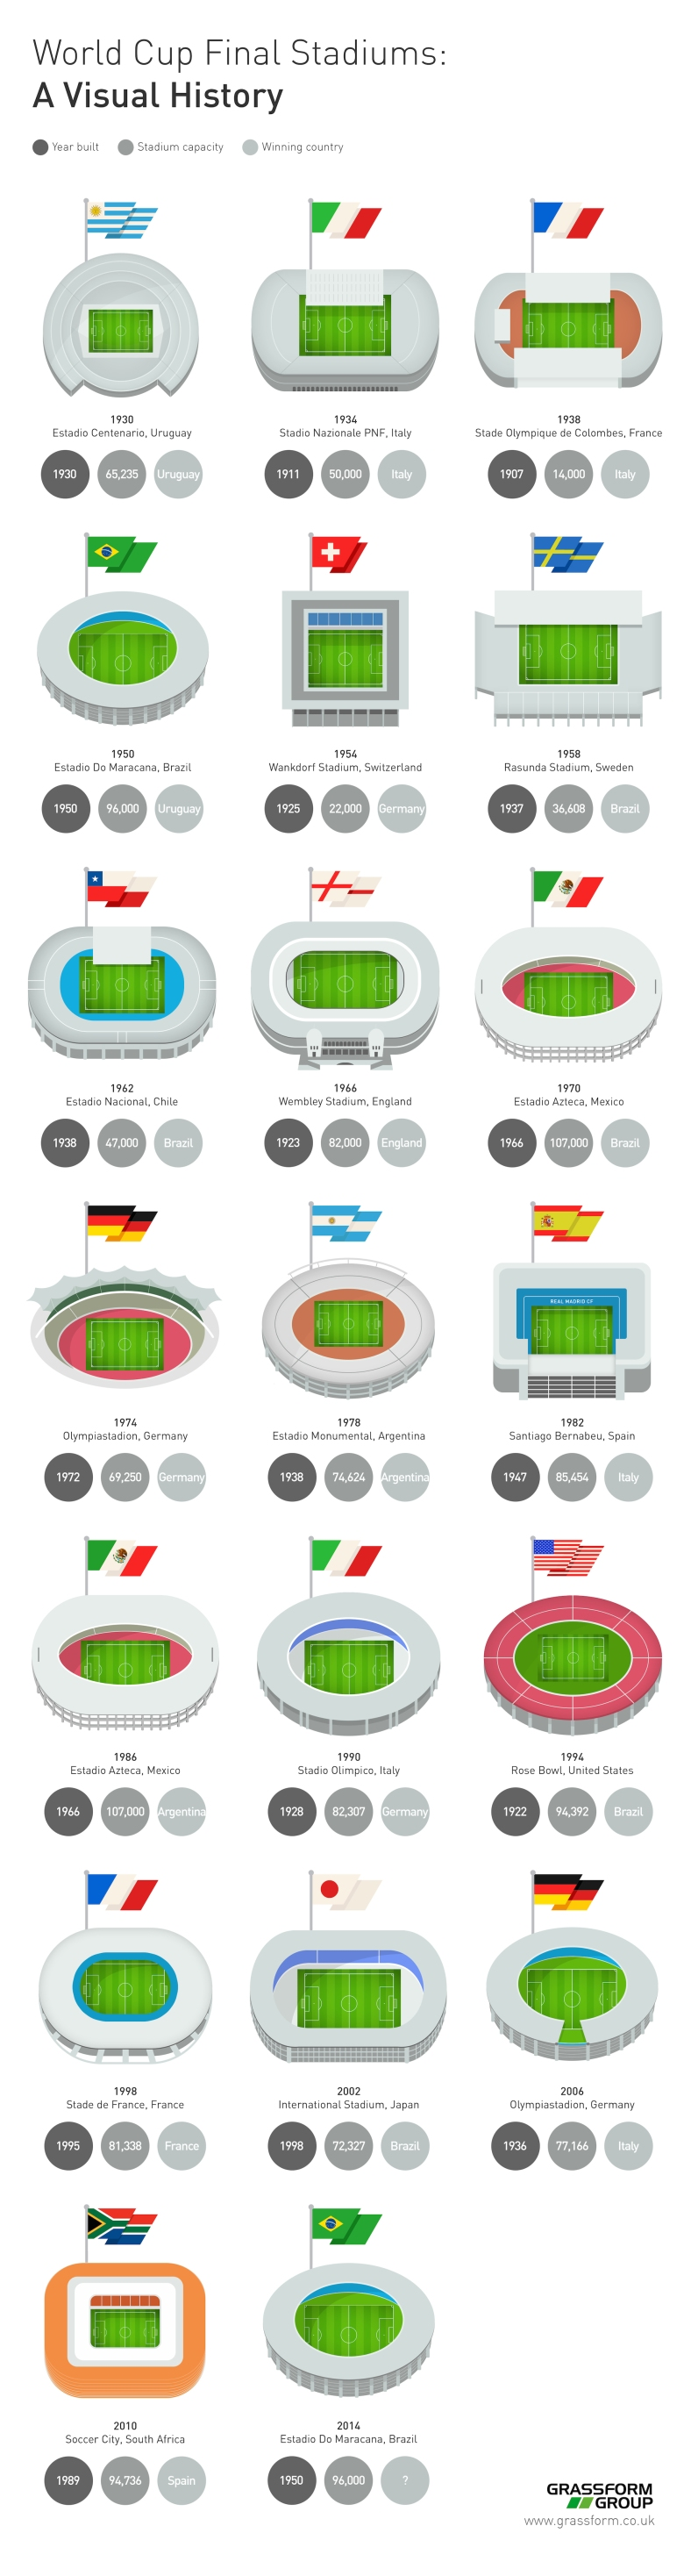 World-Cup-Final-Stadiums-Visual-History-Final1